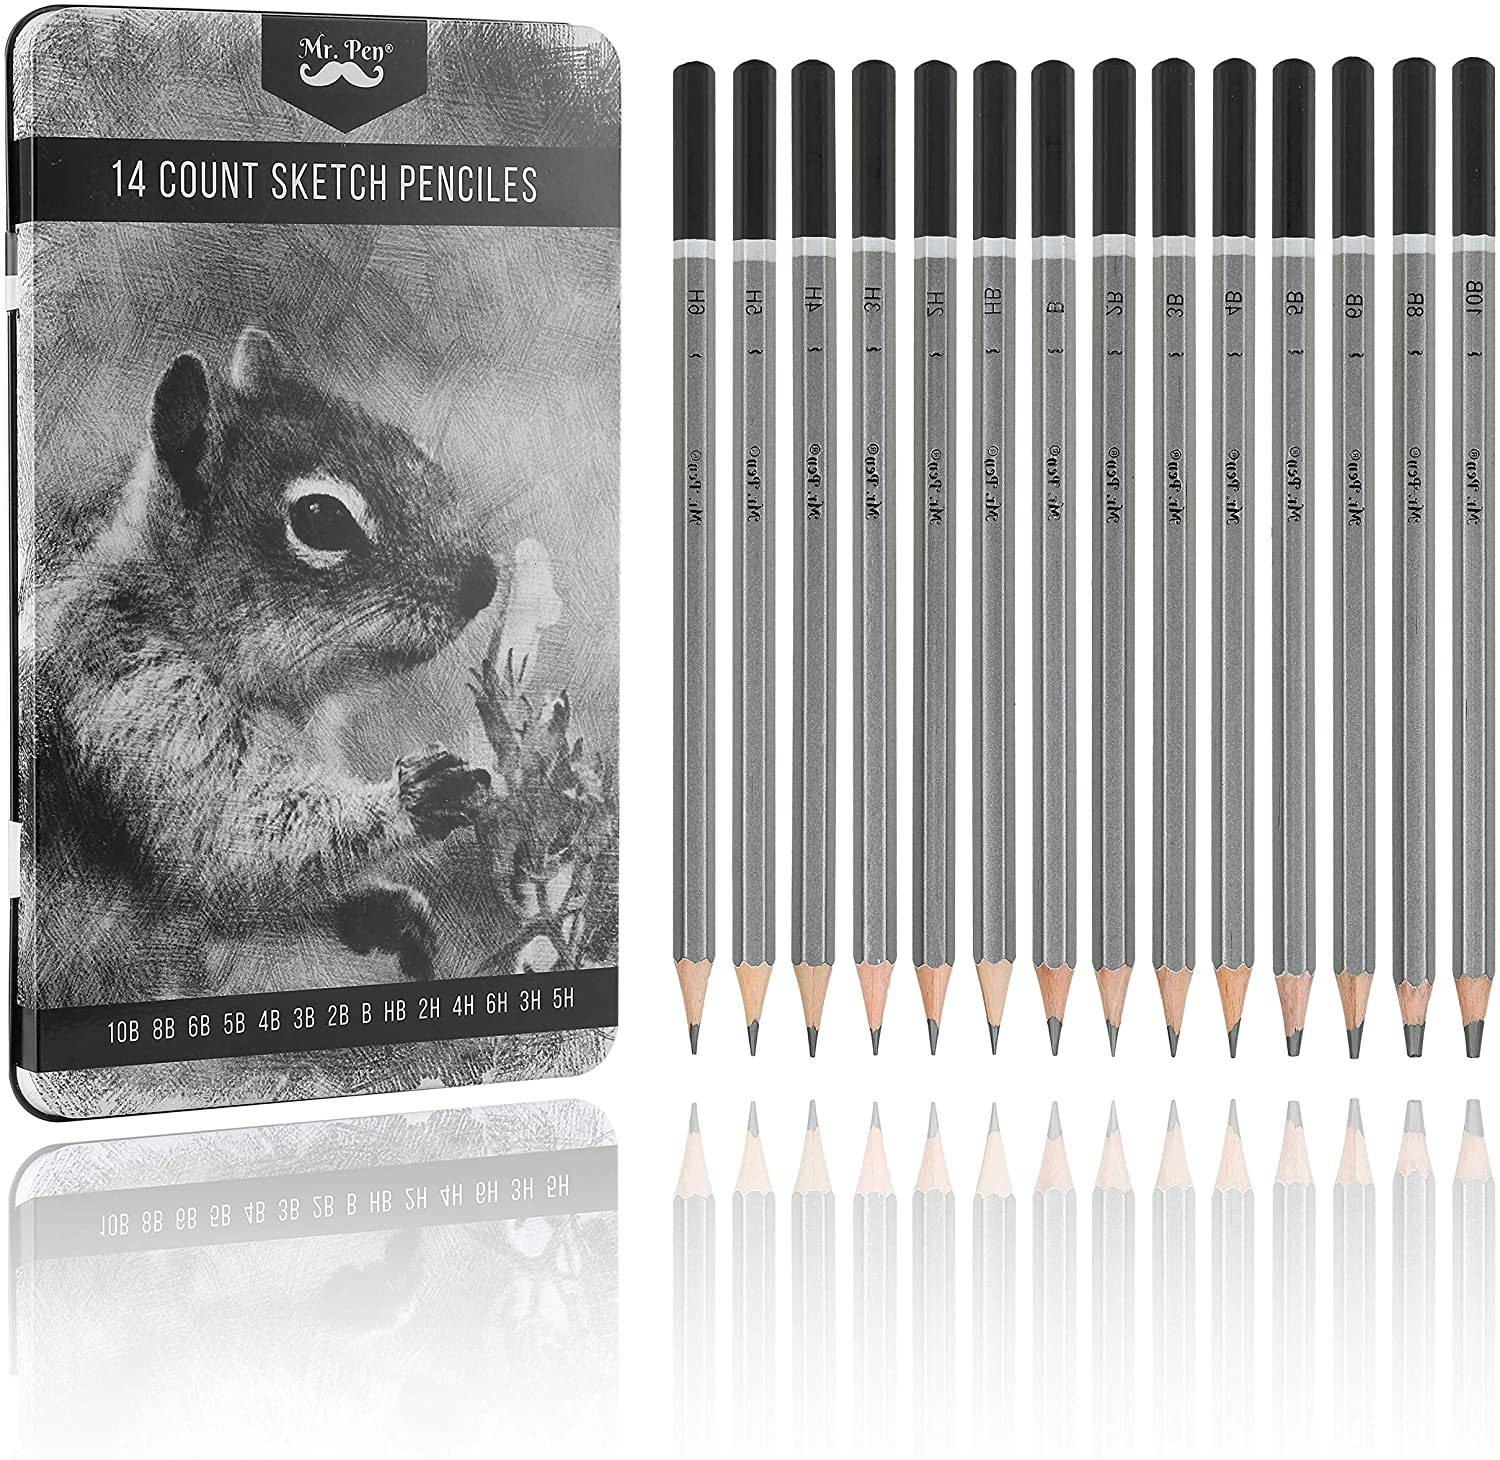 Mr. Washington Mall Pen- Sketch Pencils for 14 excellence A Drawing Pack